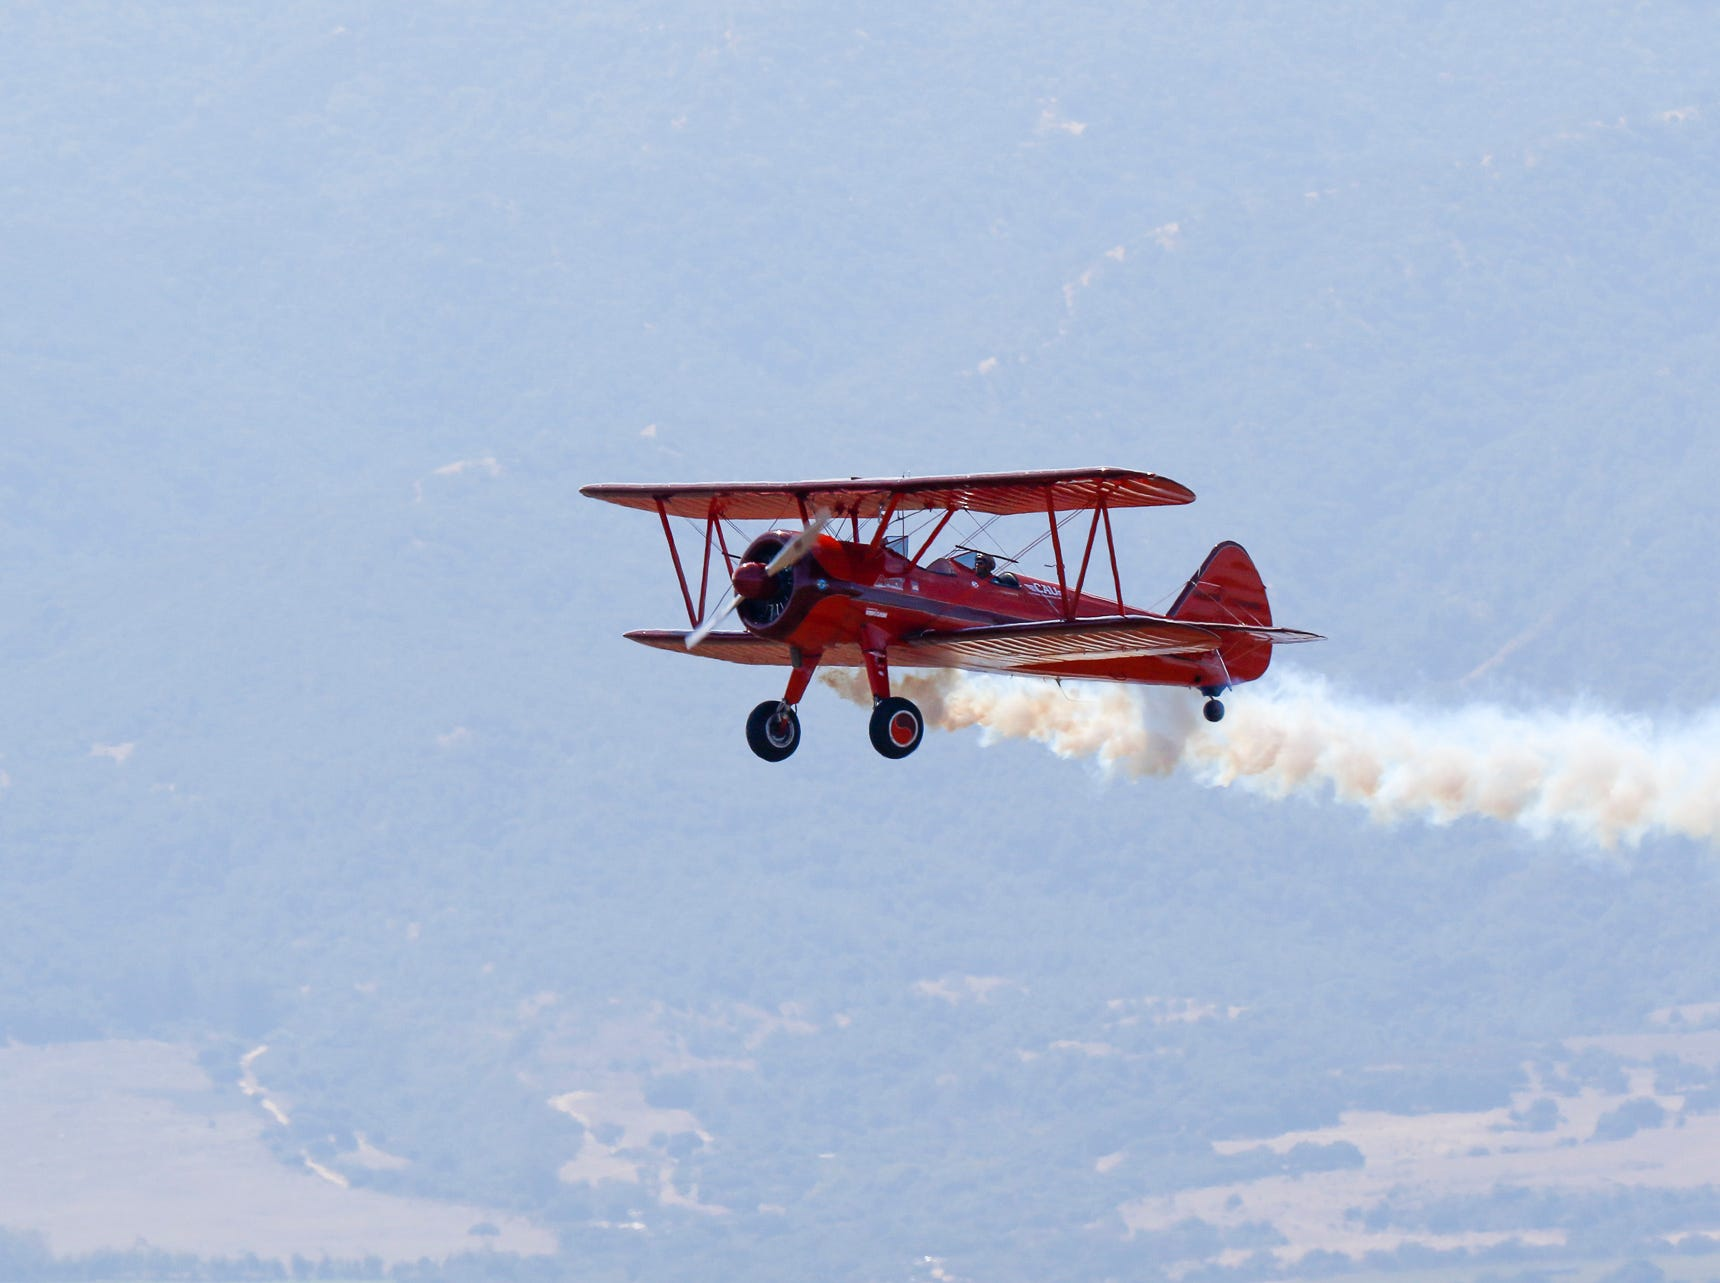 Highlights from the 38th annual California International Airshow, Salinas at the Salinas Municipal Airport on Sept. 30 in Salinas.